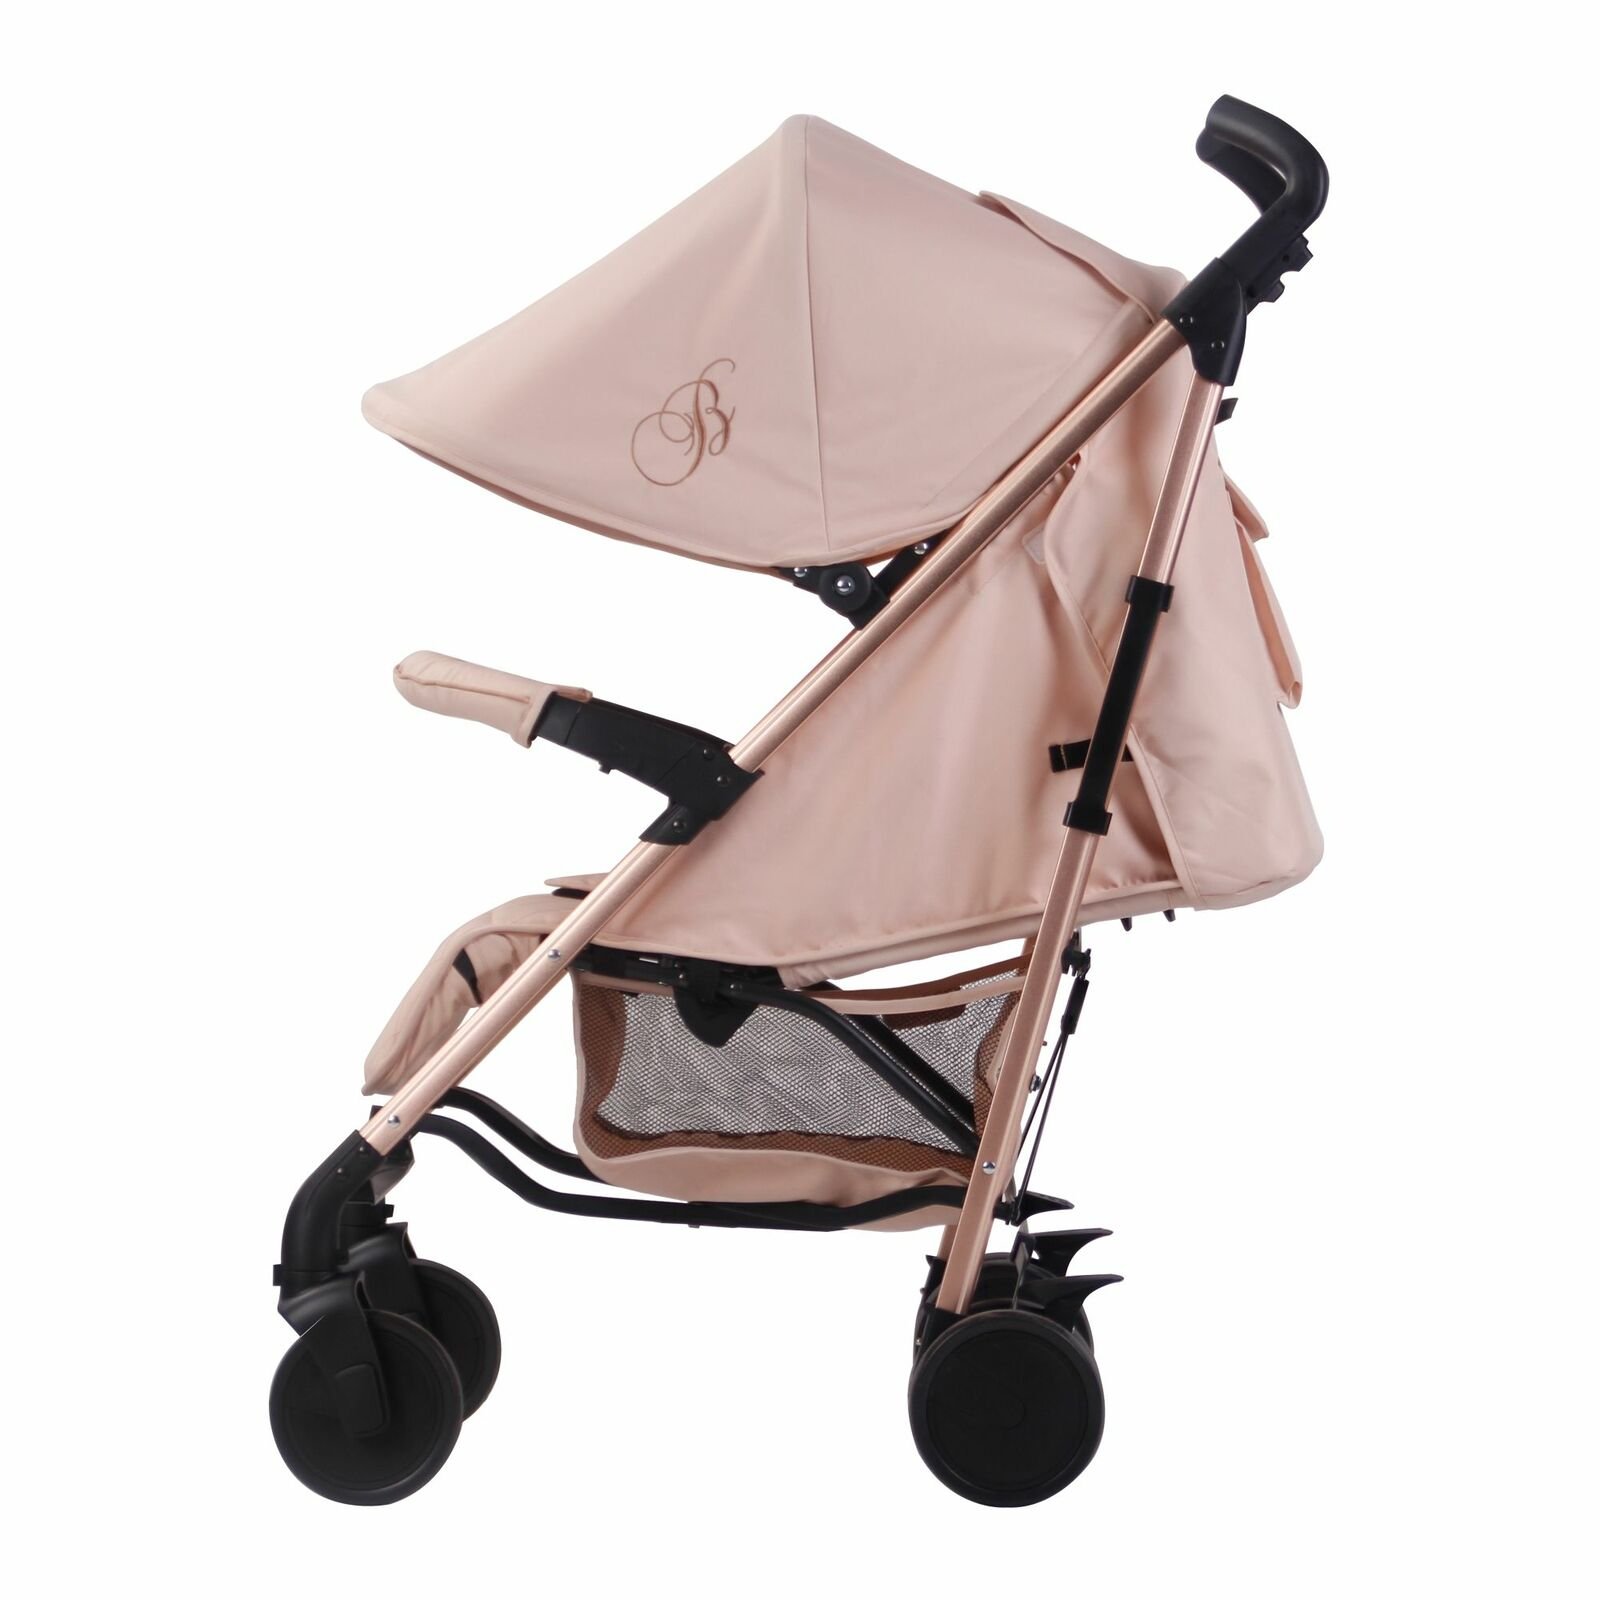 my babiie mb51 billie faiers stroller pushchair in rose. Black Bedroom Furniture Sets. Home Design Ideas